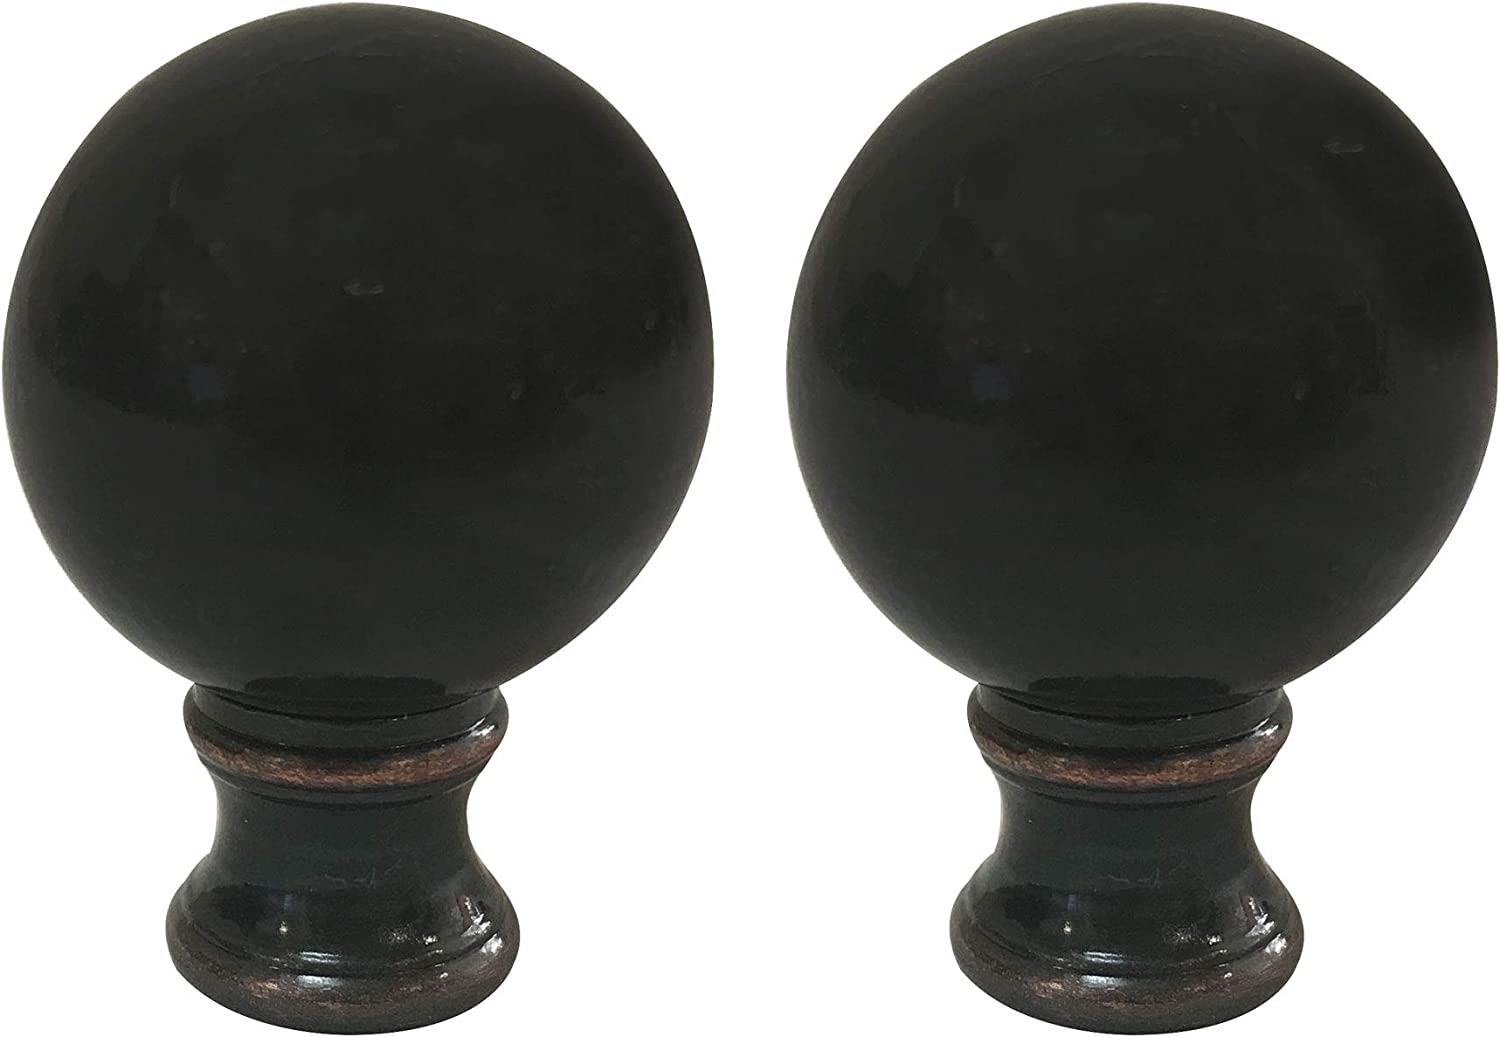 Royal Designs Ball Lamp Kansas Tampa Mall City Mall Finial for Shade Rubbe 2 Inch Oil